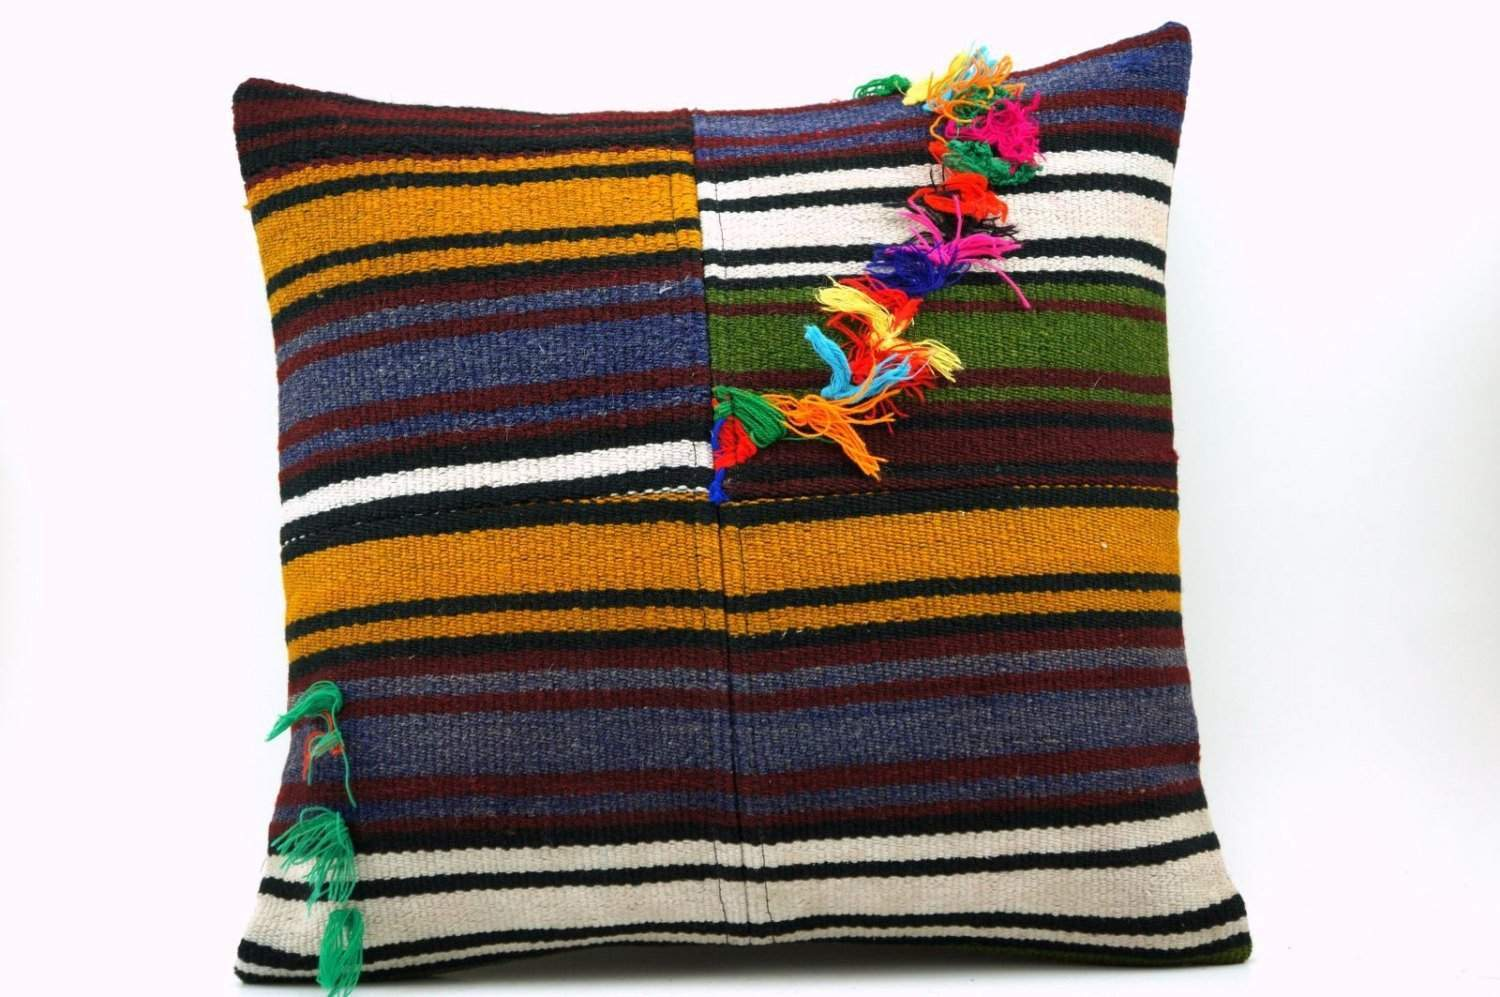 16x16 Vintage Hand Woven Turkish Kilim Pillow  - Old  Kilim Cushion 322,navy blue,green,black,amber,claret red,white , tassel,striped - kilimpillowstore  - 1